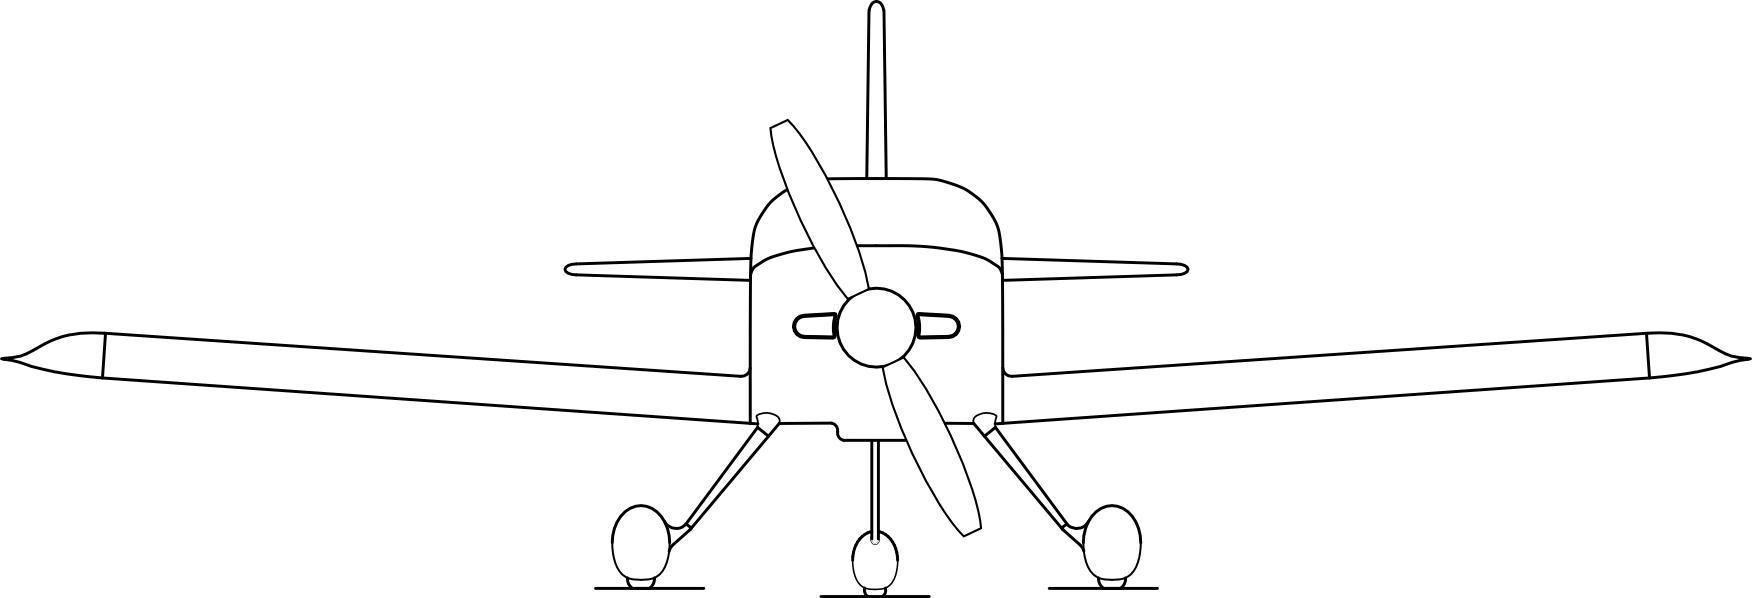 3 view drawing